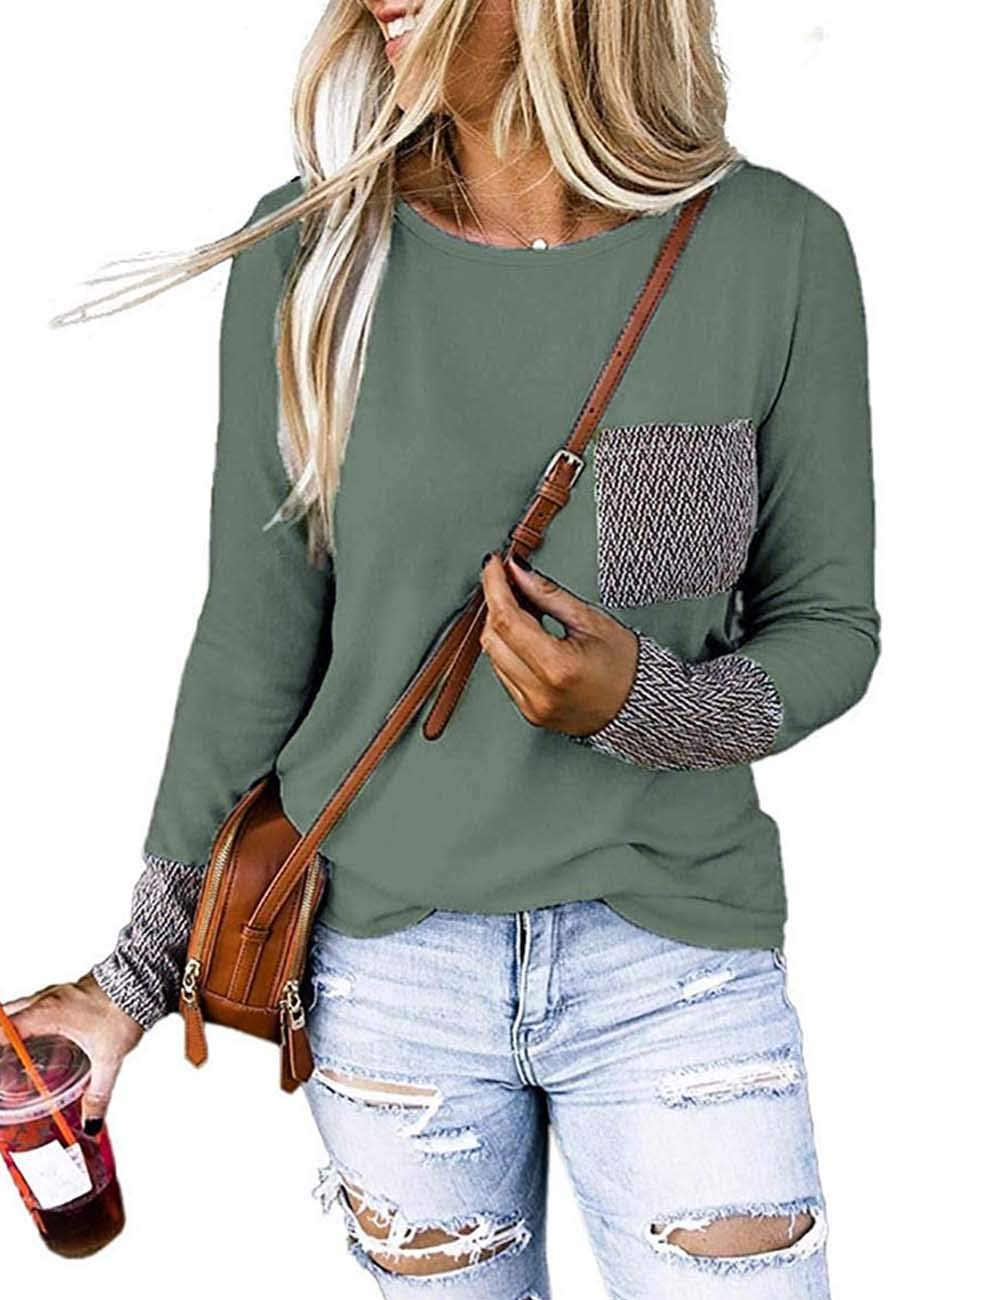 MEROKEETY Womens Long Sleeve Shirts Chevron Print Patchwork Pockets Casual Pullover Tops